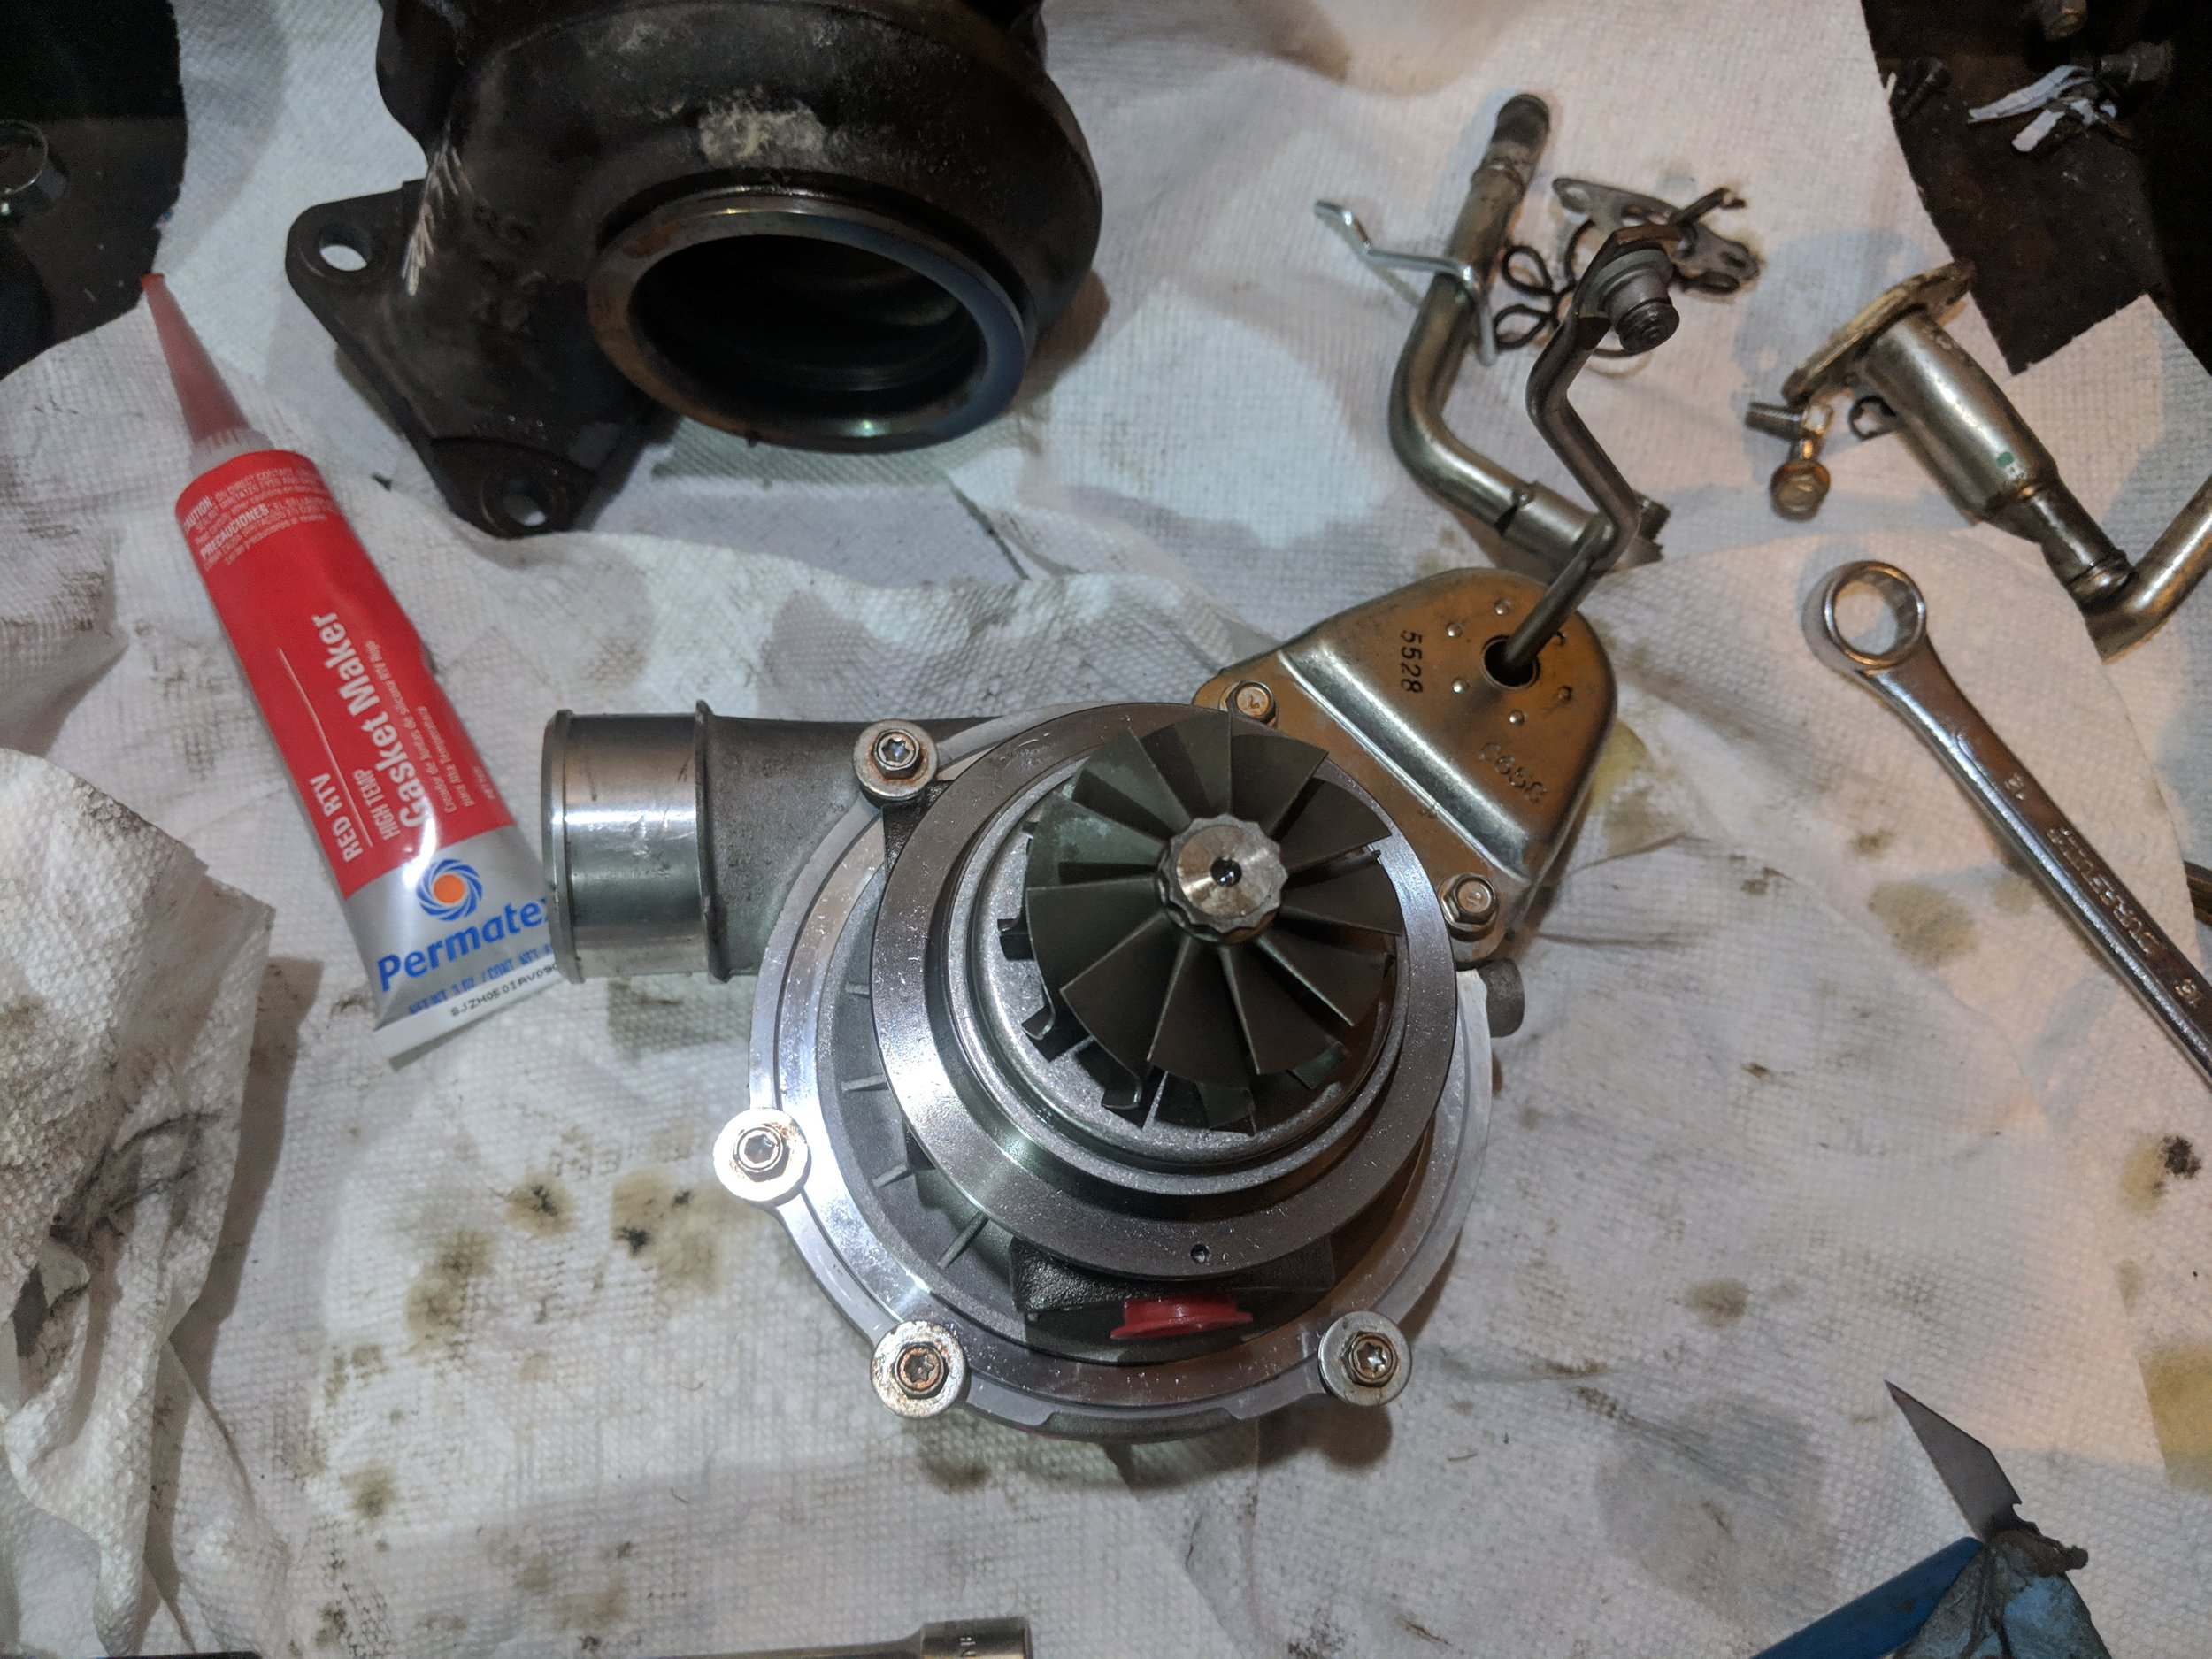 If you need to replace the CHRA of your VF turbo that is quite easy to diy!